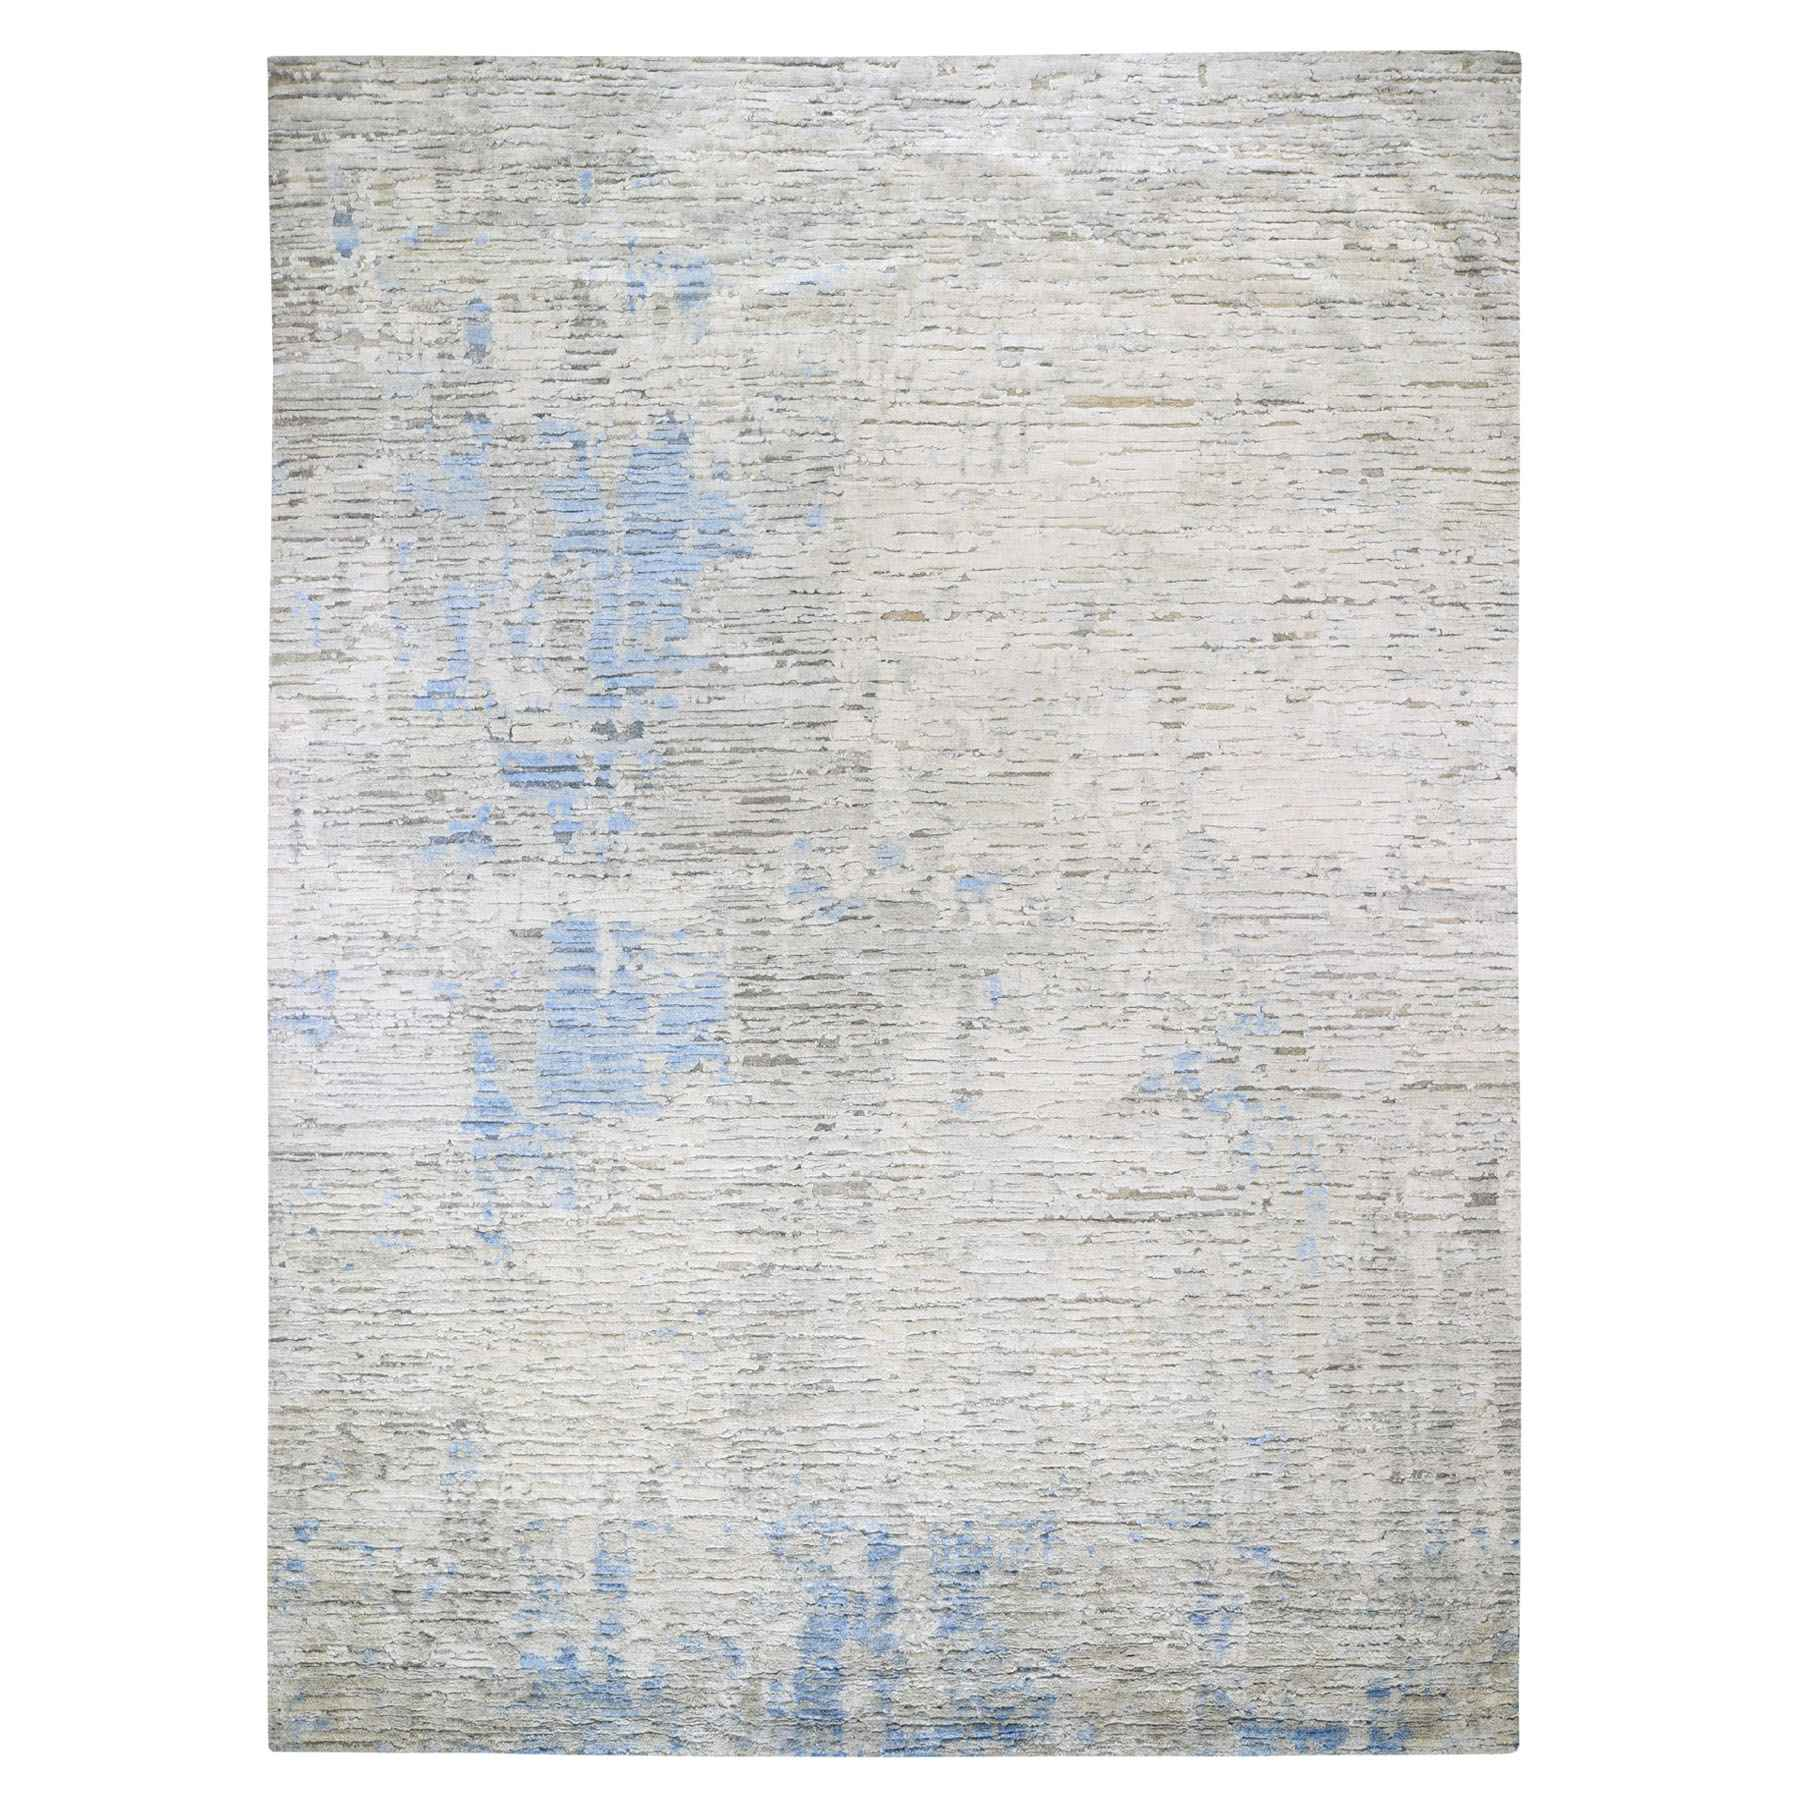 Modern-and-Contemporary-Hand-Knotted-Rug-237465